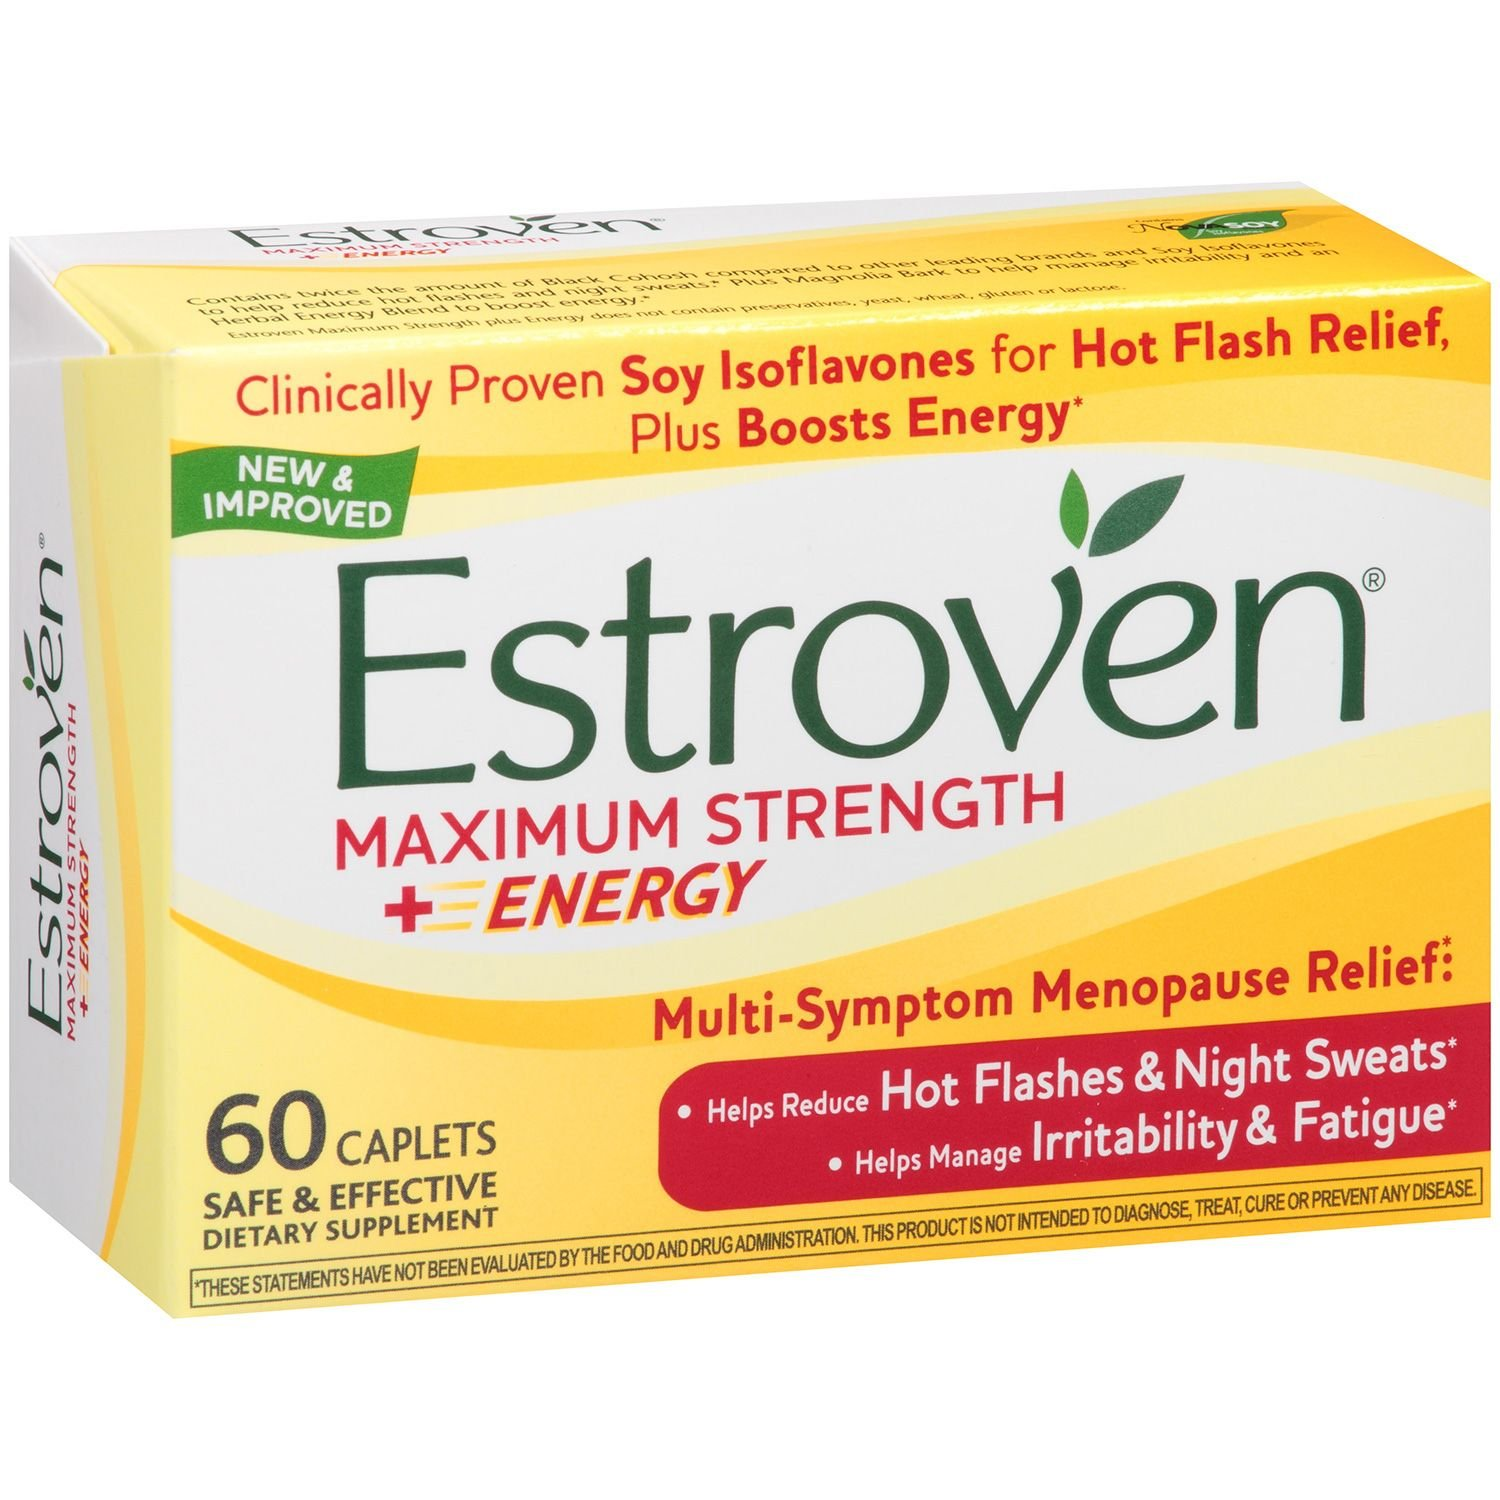 Estroven Maximum Strength + Energy Dietary Supplement Caplets (60 ct.) (pack of 6)